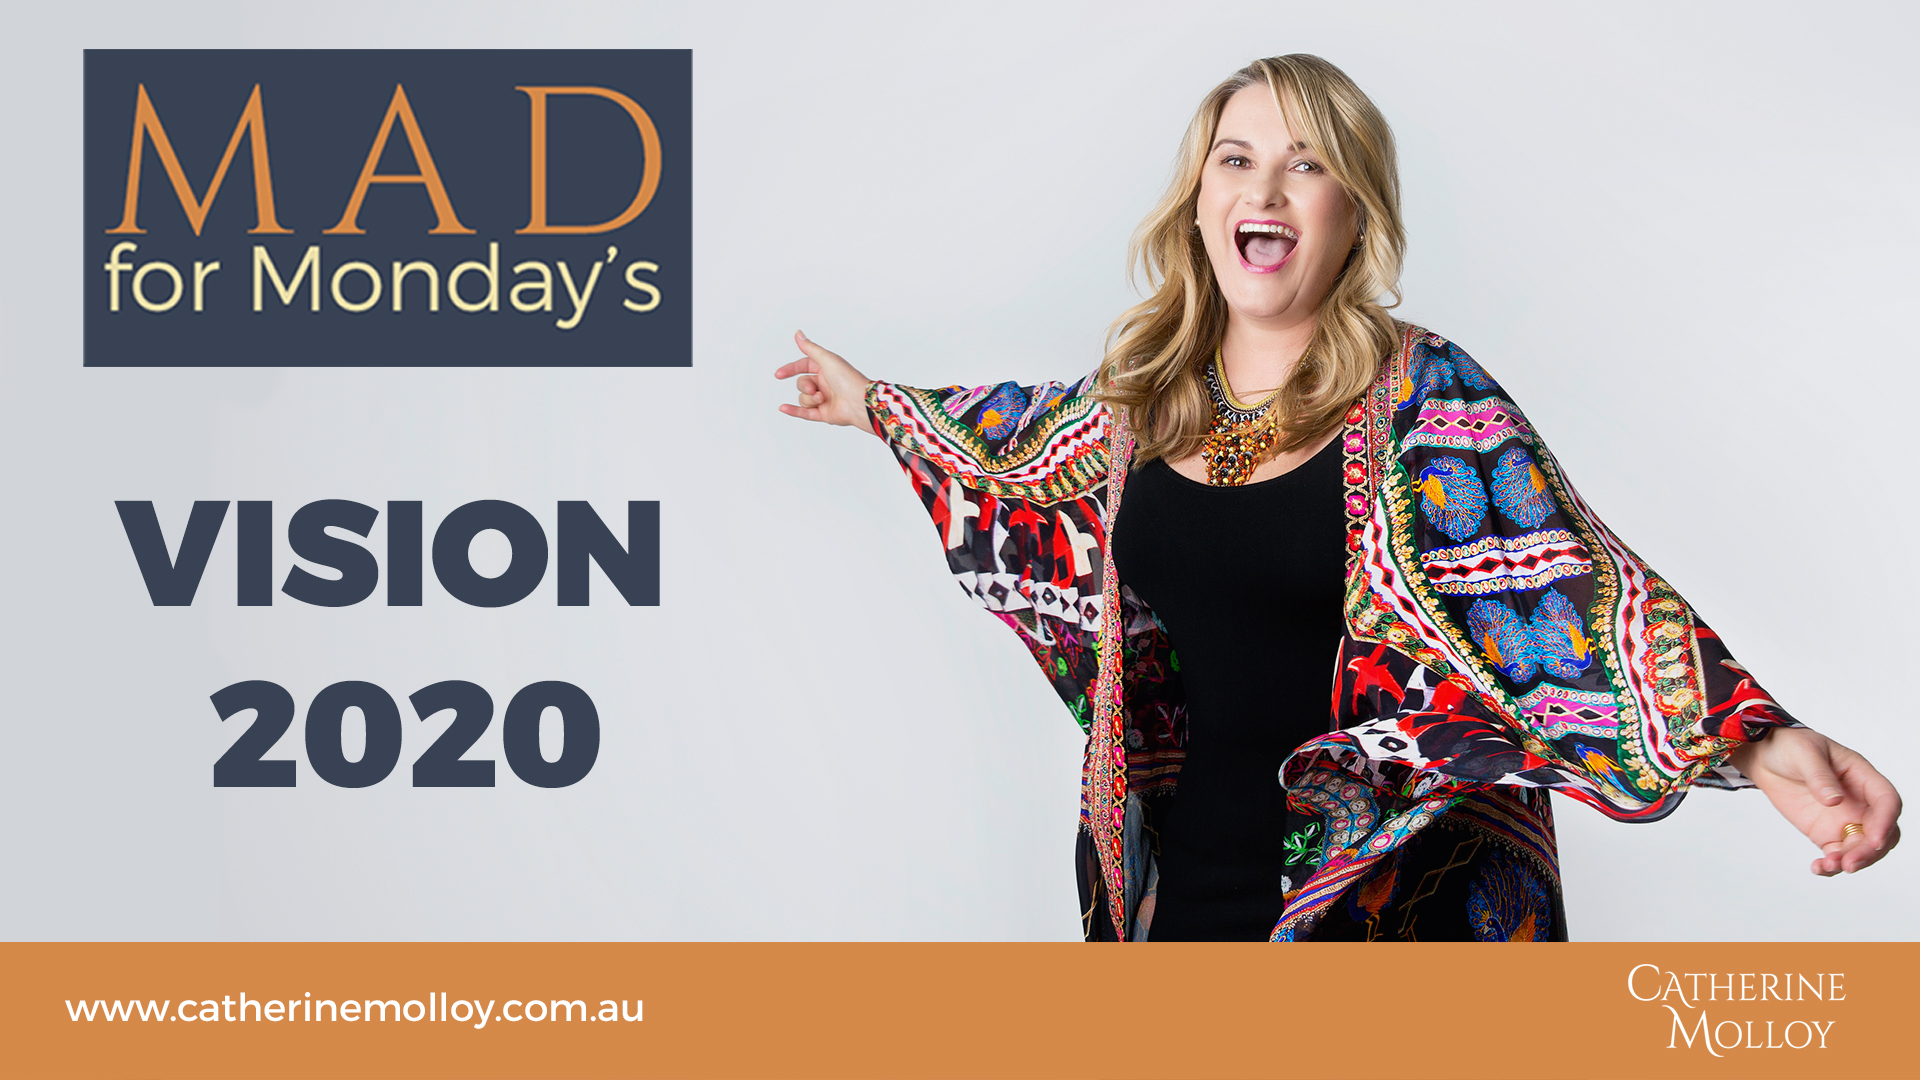 MAD for Monday's – Vision 2020